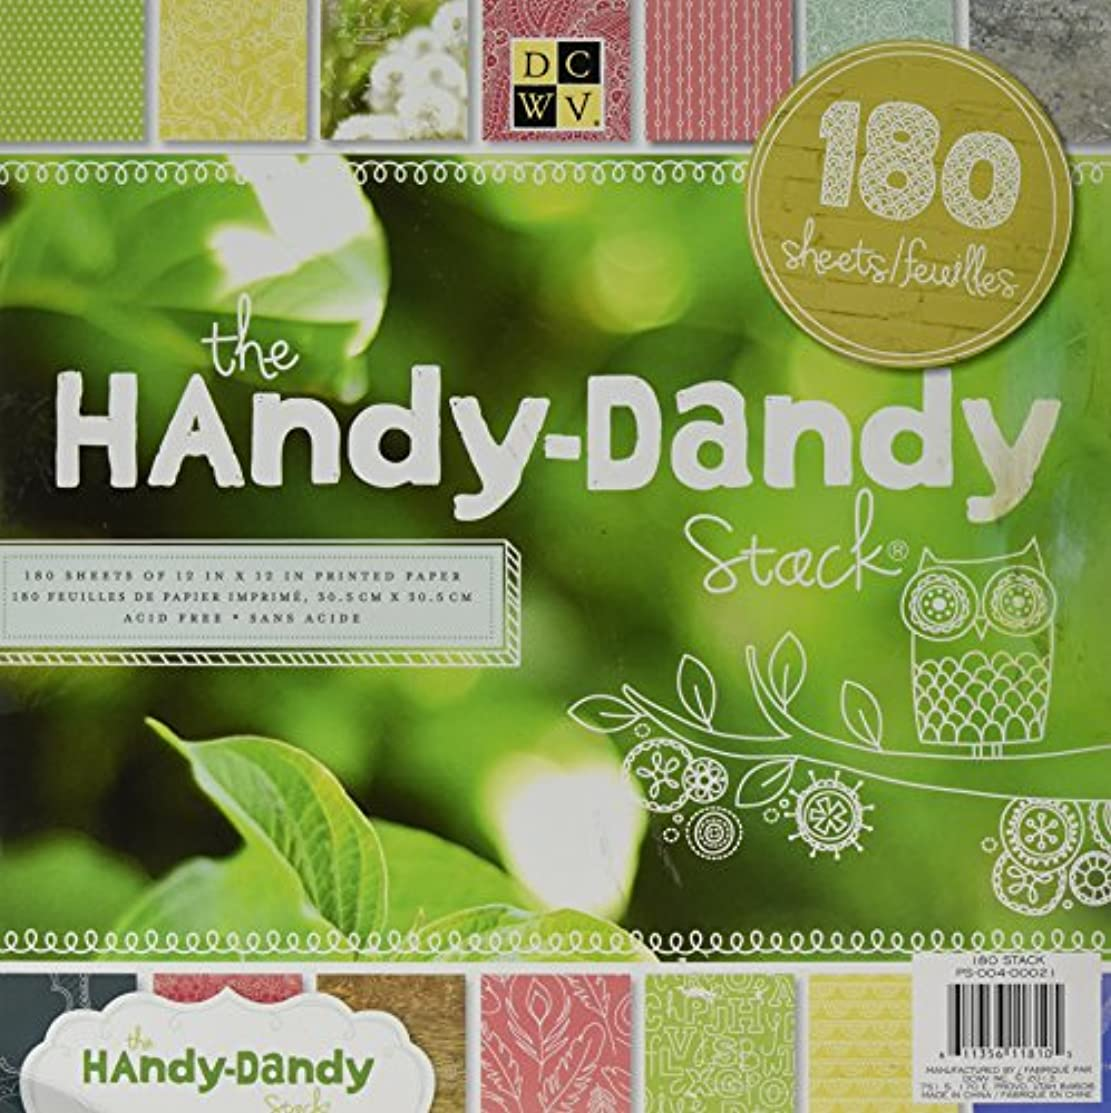 American Crafts 12 x 12 Inch Handy Dandy 180 Sheets Die Cuts with a View Stacks, 12